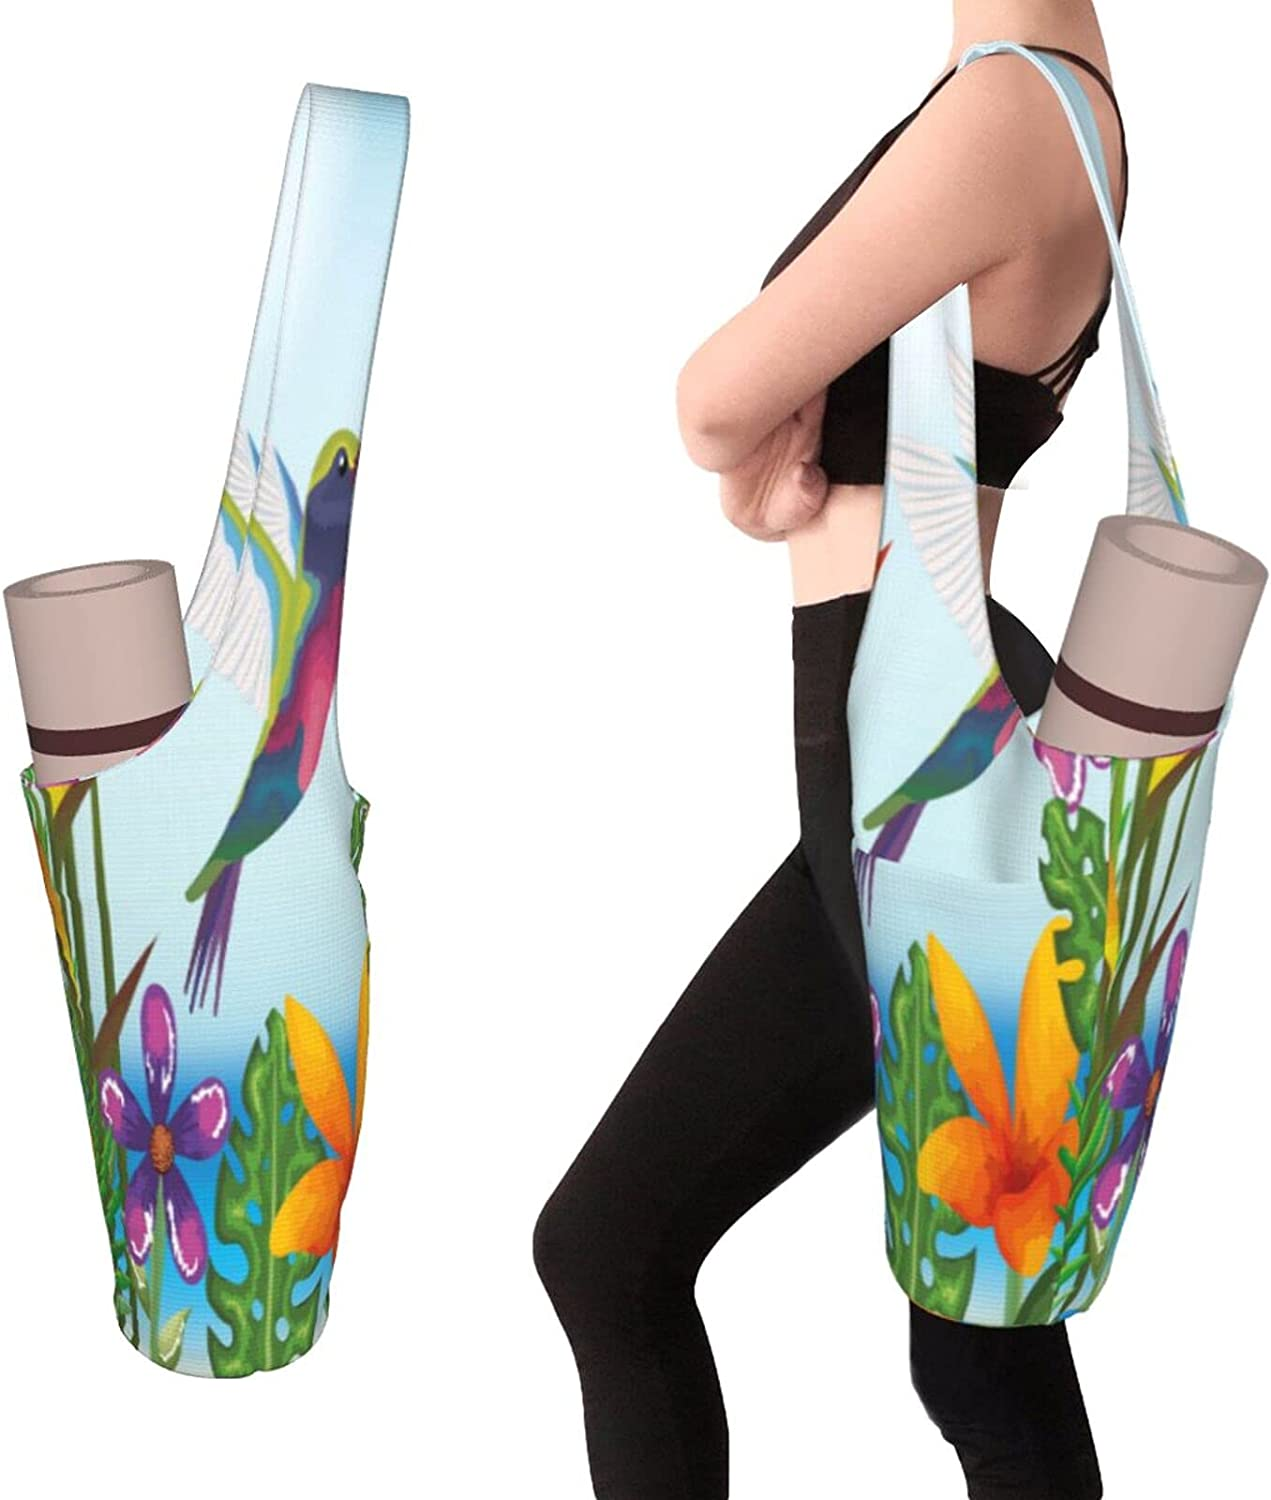 Yoga Mats Bag With Chicago Mall Same day shipping Pockets Size Access Thick Large Men